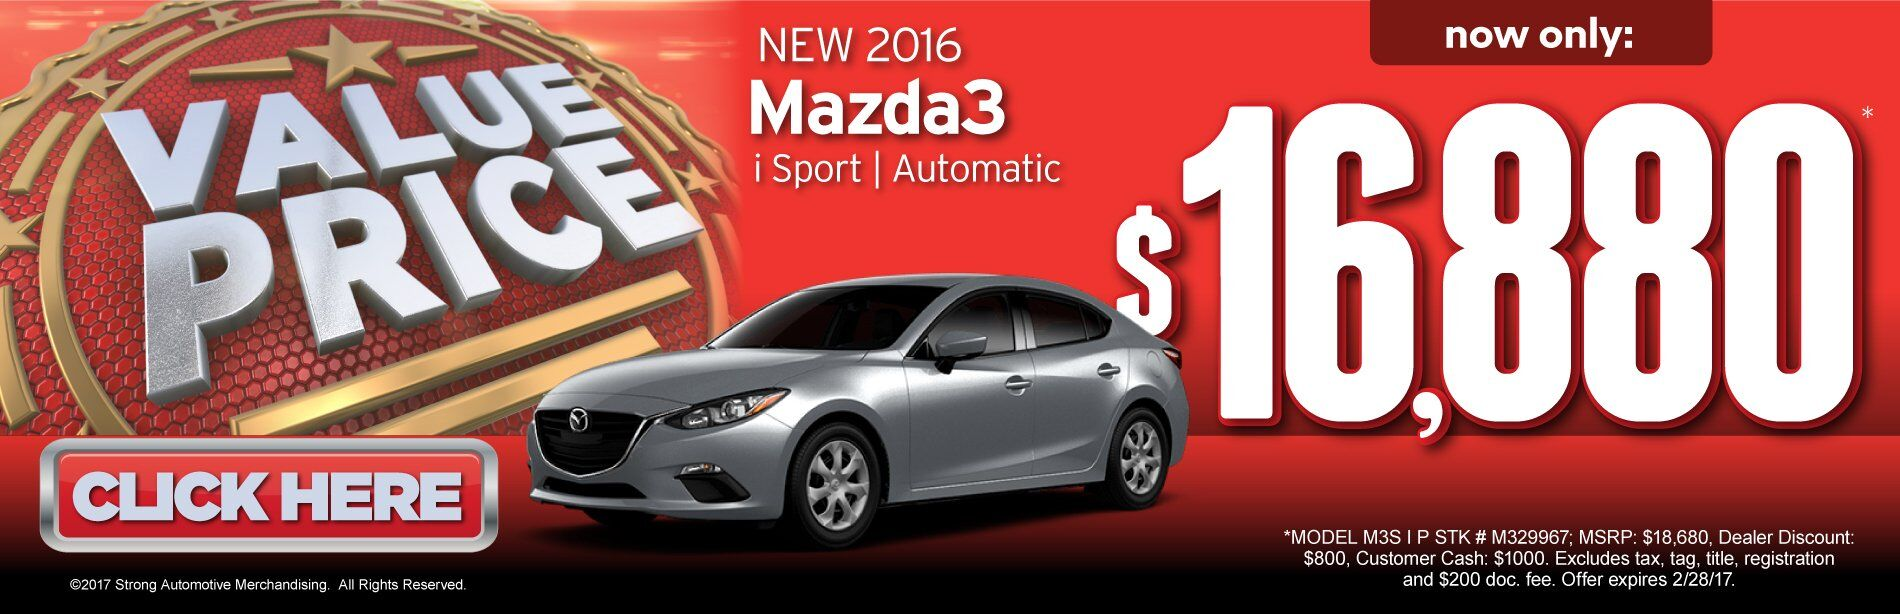 Value Price Mazda3 i Sport